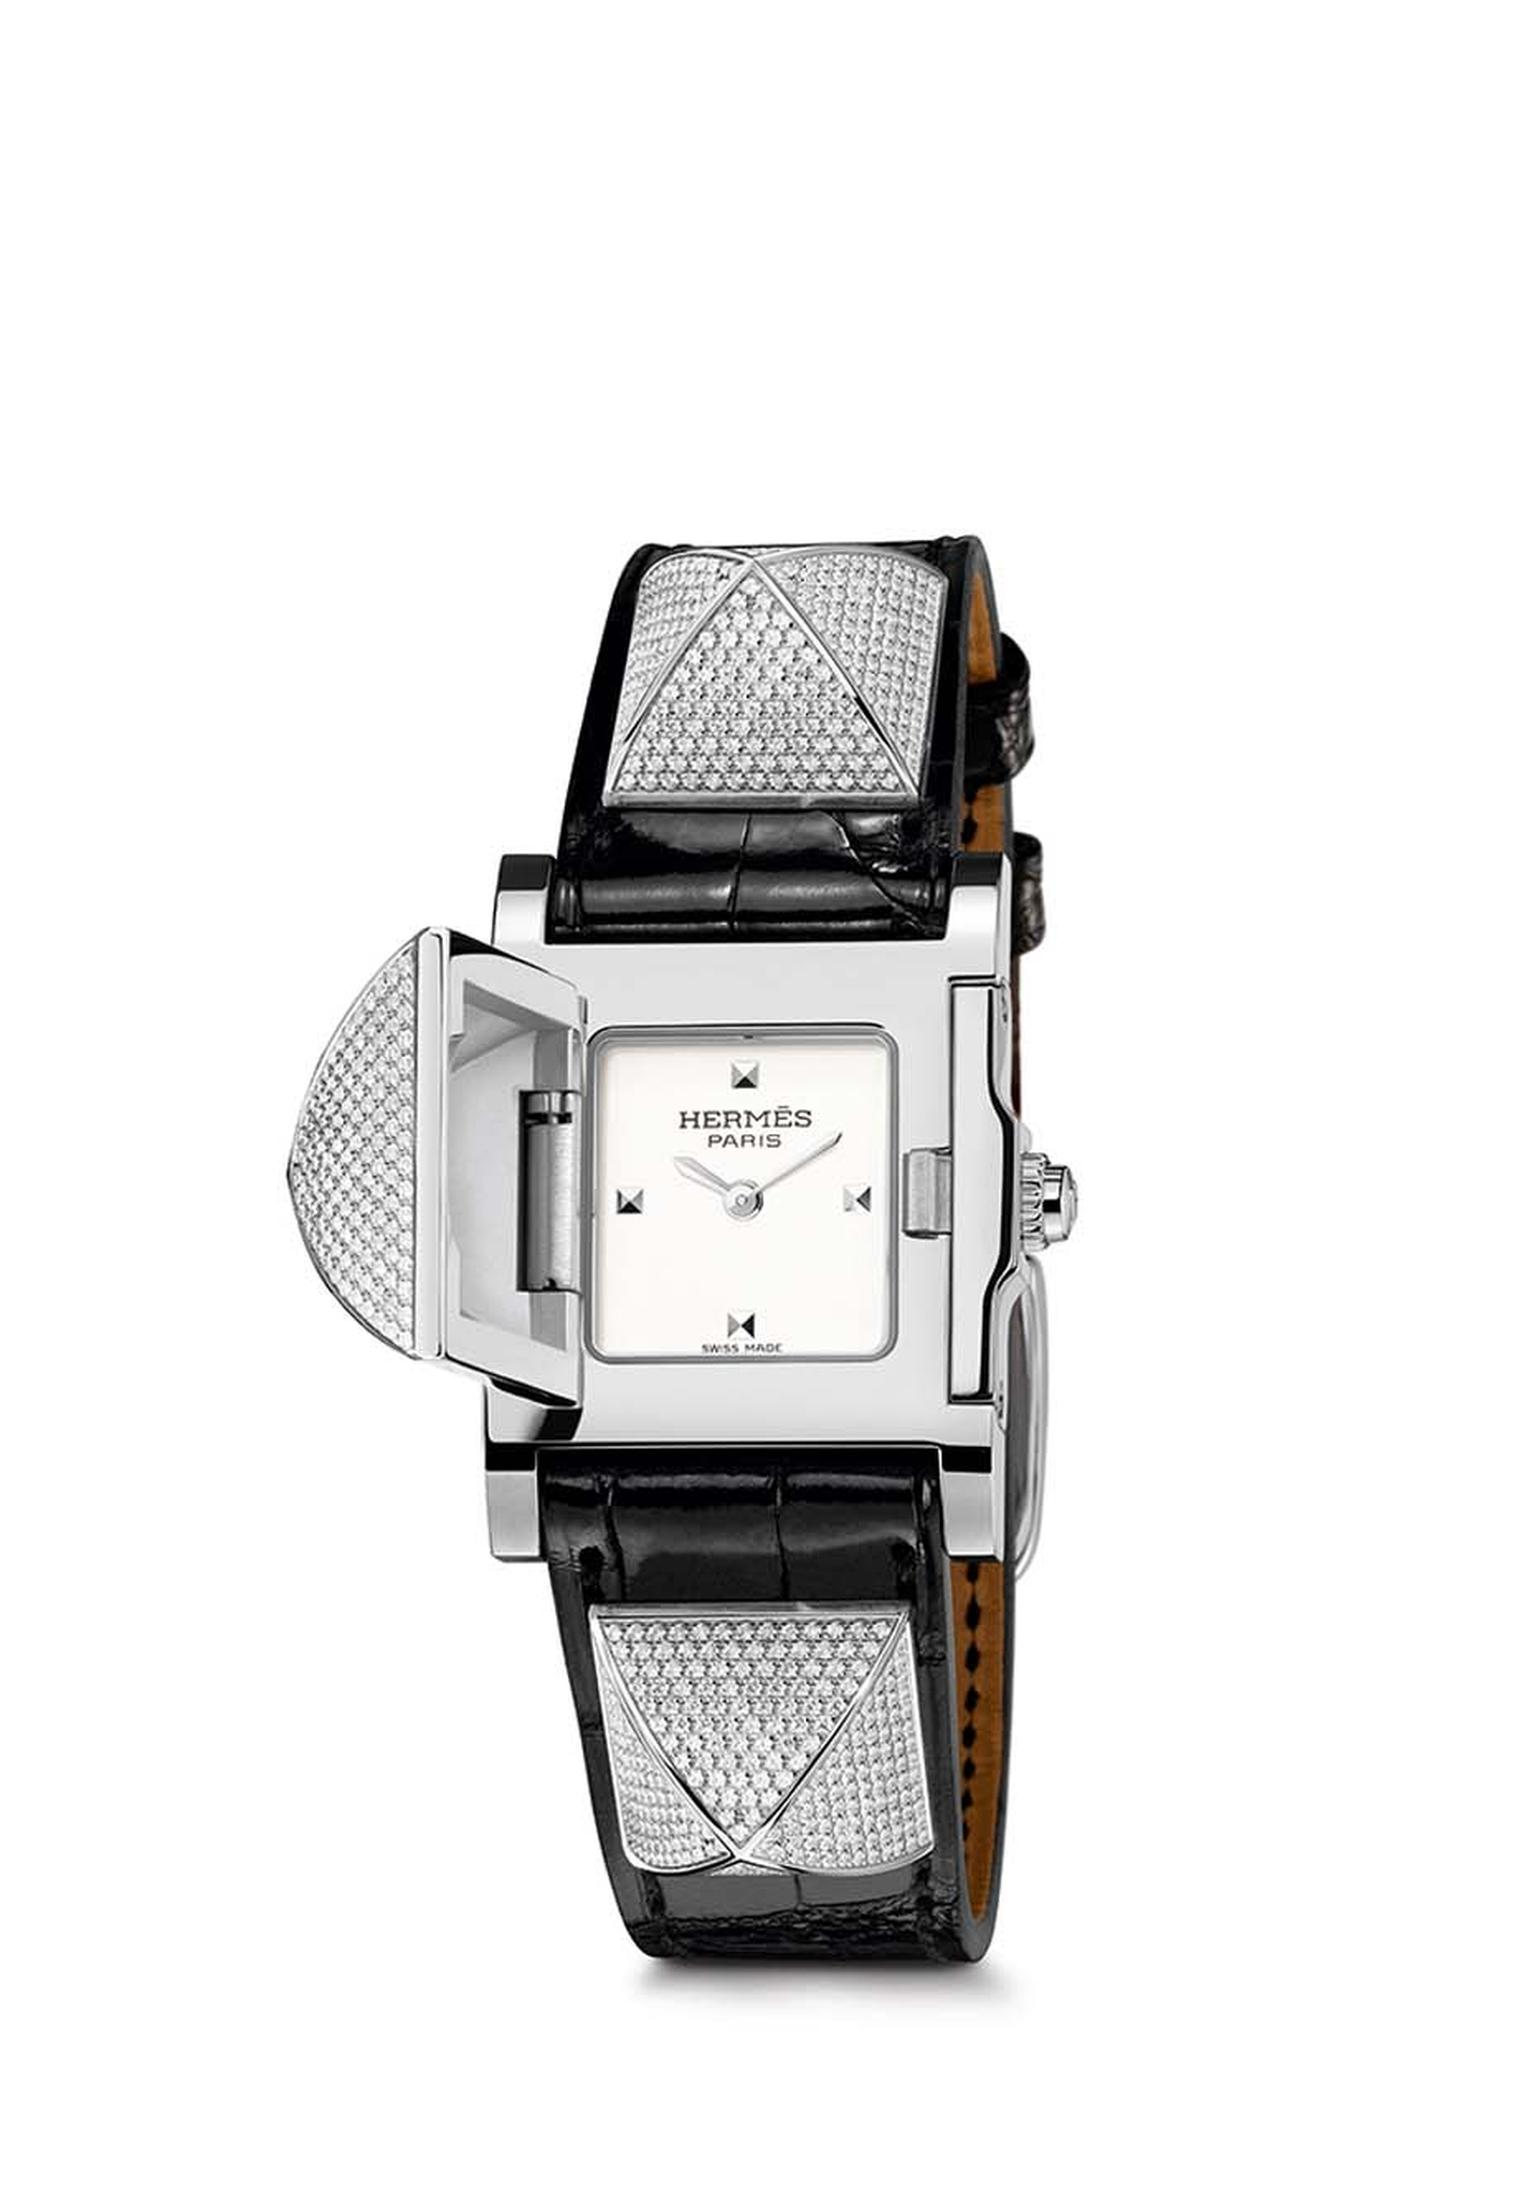 Hermès Médor smooth black alligator PM watch set with a total of 499 diamonds.